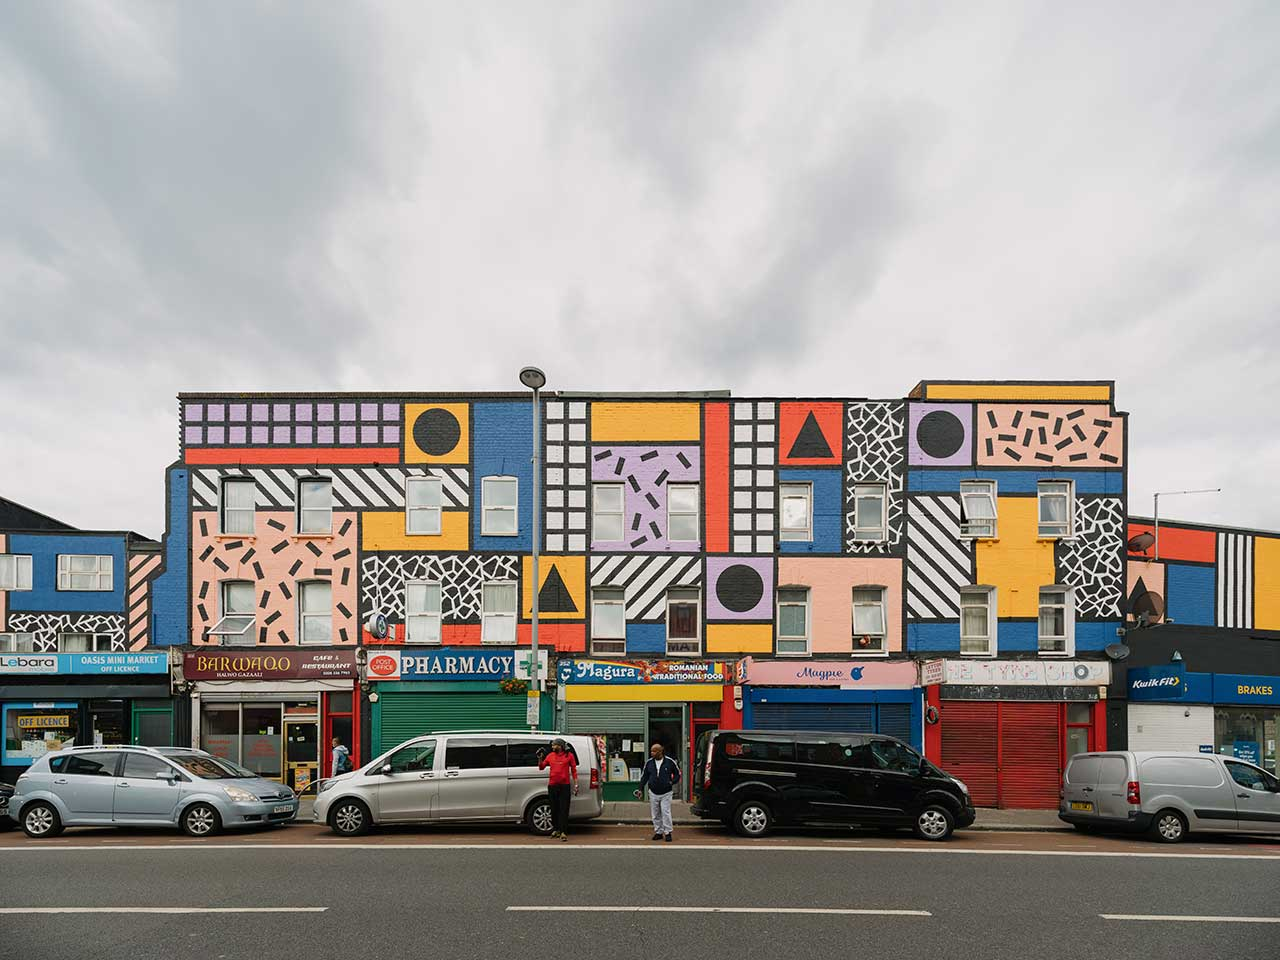 Camille Walala Brings Her Vibrant Aesthetic To East London High Street